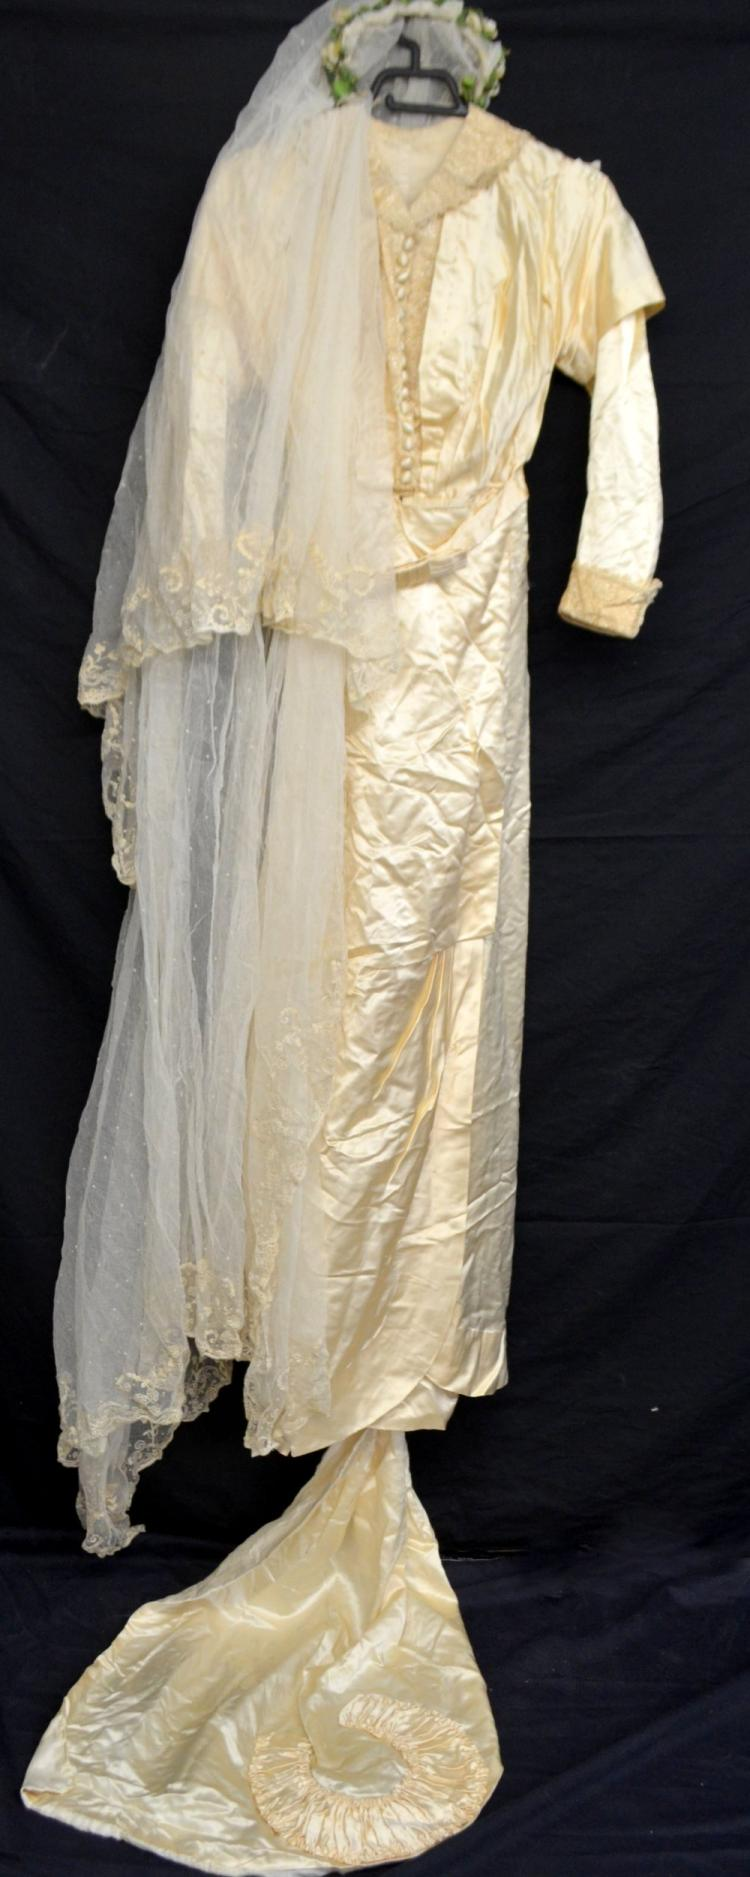 Edwardian silk wedding dress, embroidered  net ful